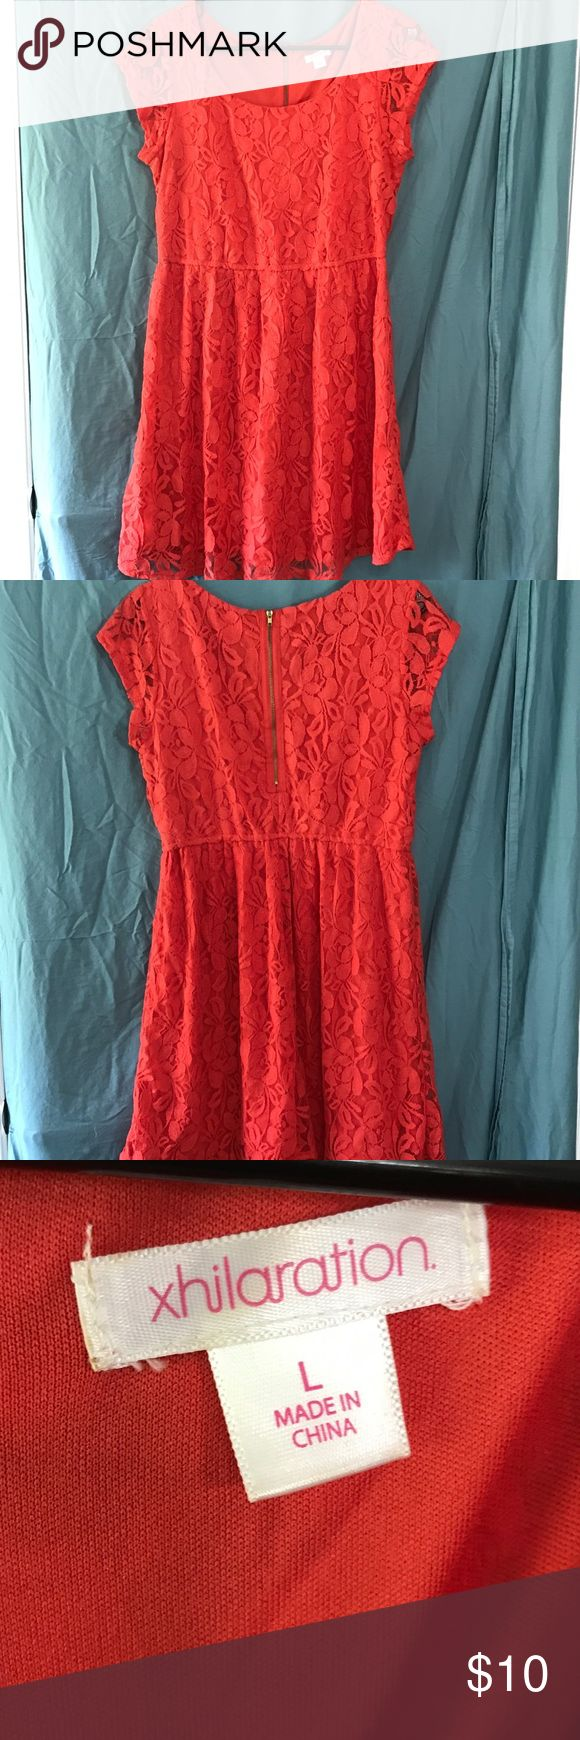 Coral lace dress Xhilaration• orange coral colored lace dress• worn once• extremely comfortable• size L• Xhilaration Dresses Midi